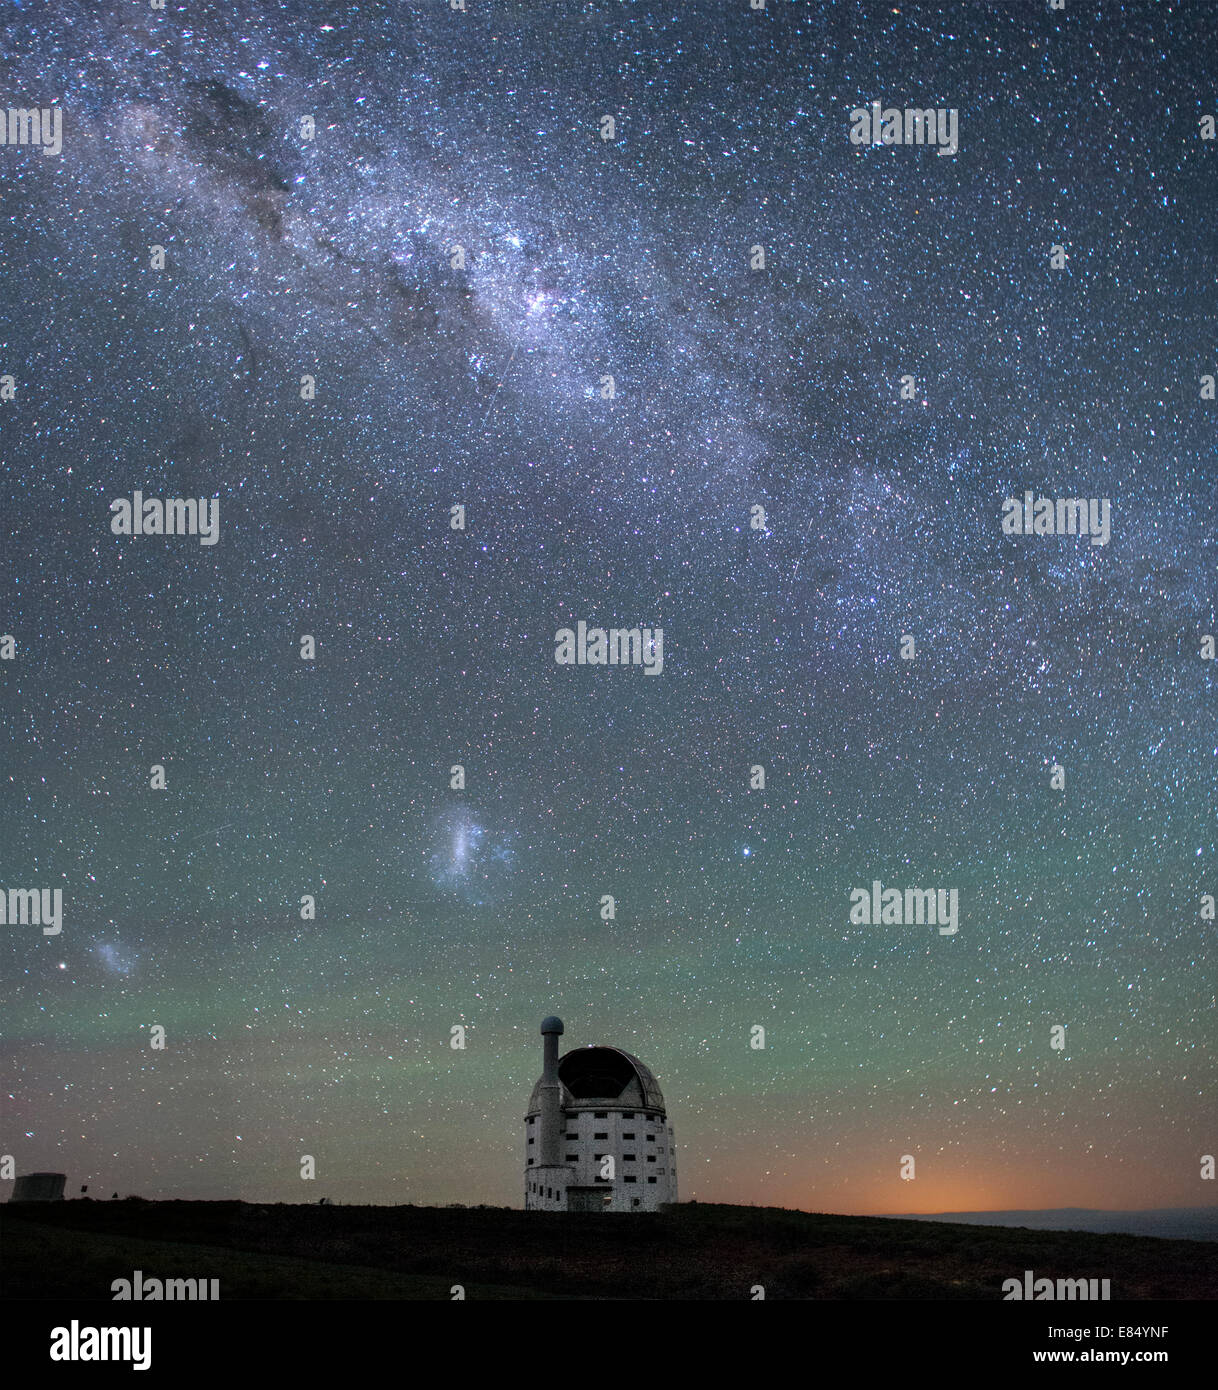 The Milky Way and the SALT (Southern African Large Telescope) in Sutherland, Northern Cape Province, South Africa. - Stock Image